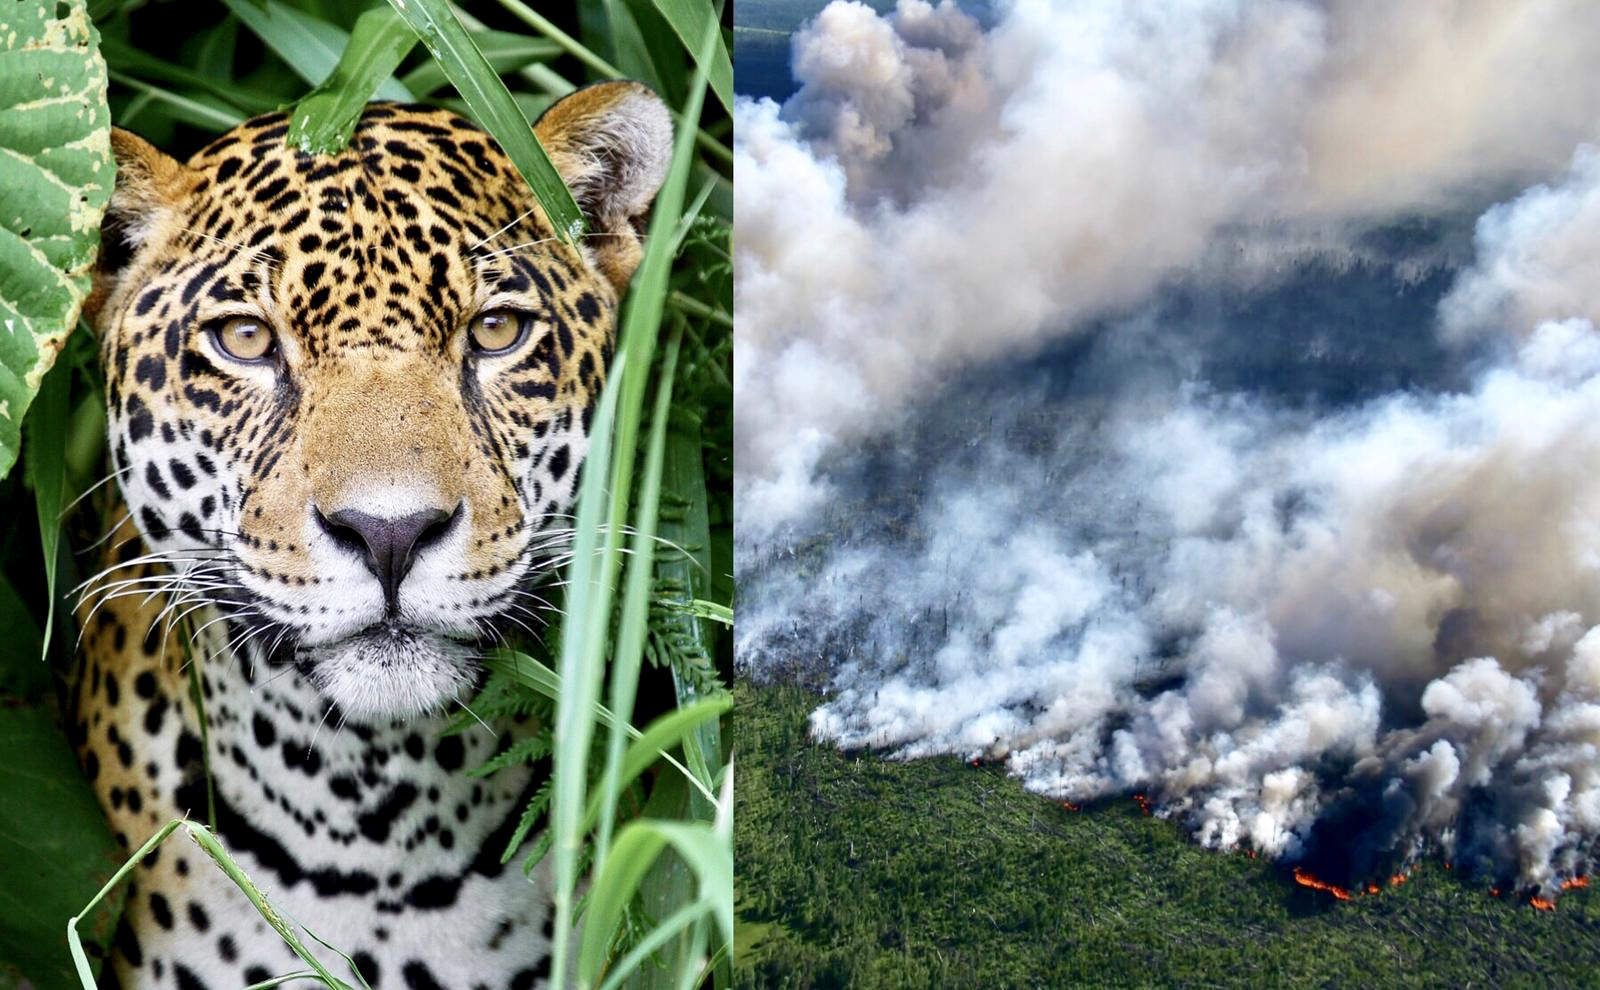 Urgent The Amazon Rainforest Has Been Burning For 3 Weeks